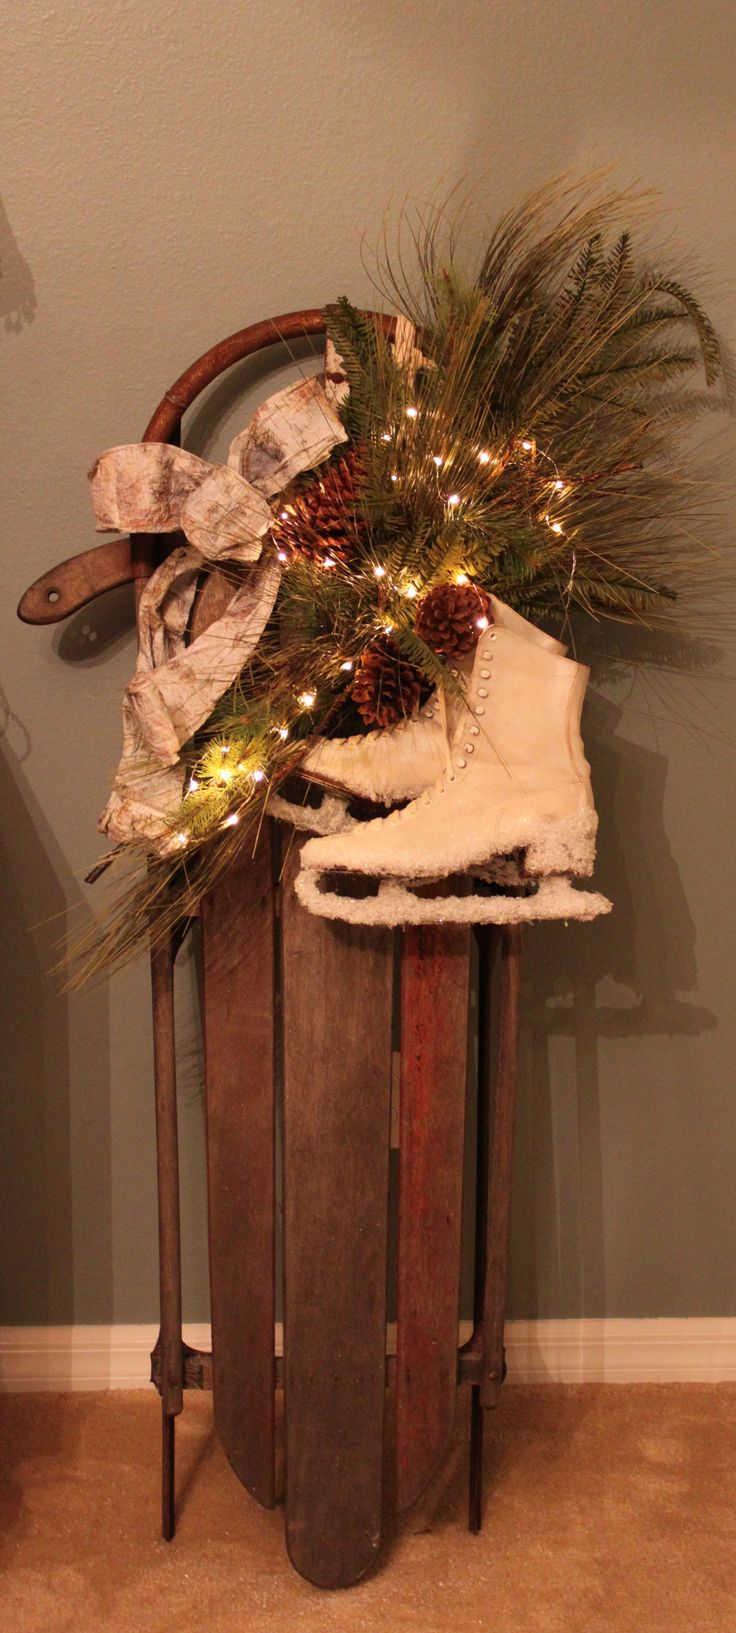 Primitive christmas ideas to make - Home Snow Sled Decoration I Want A Vintage Sled So Bad